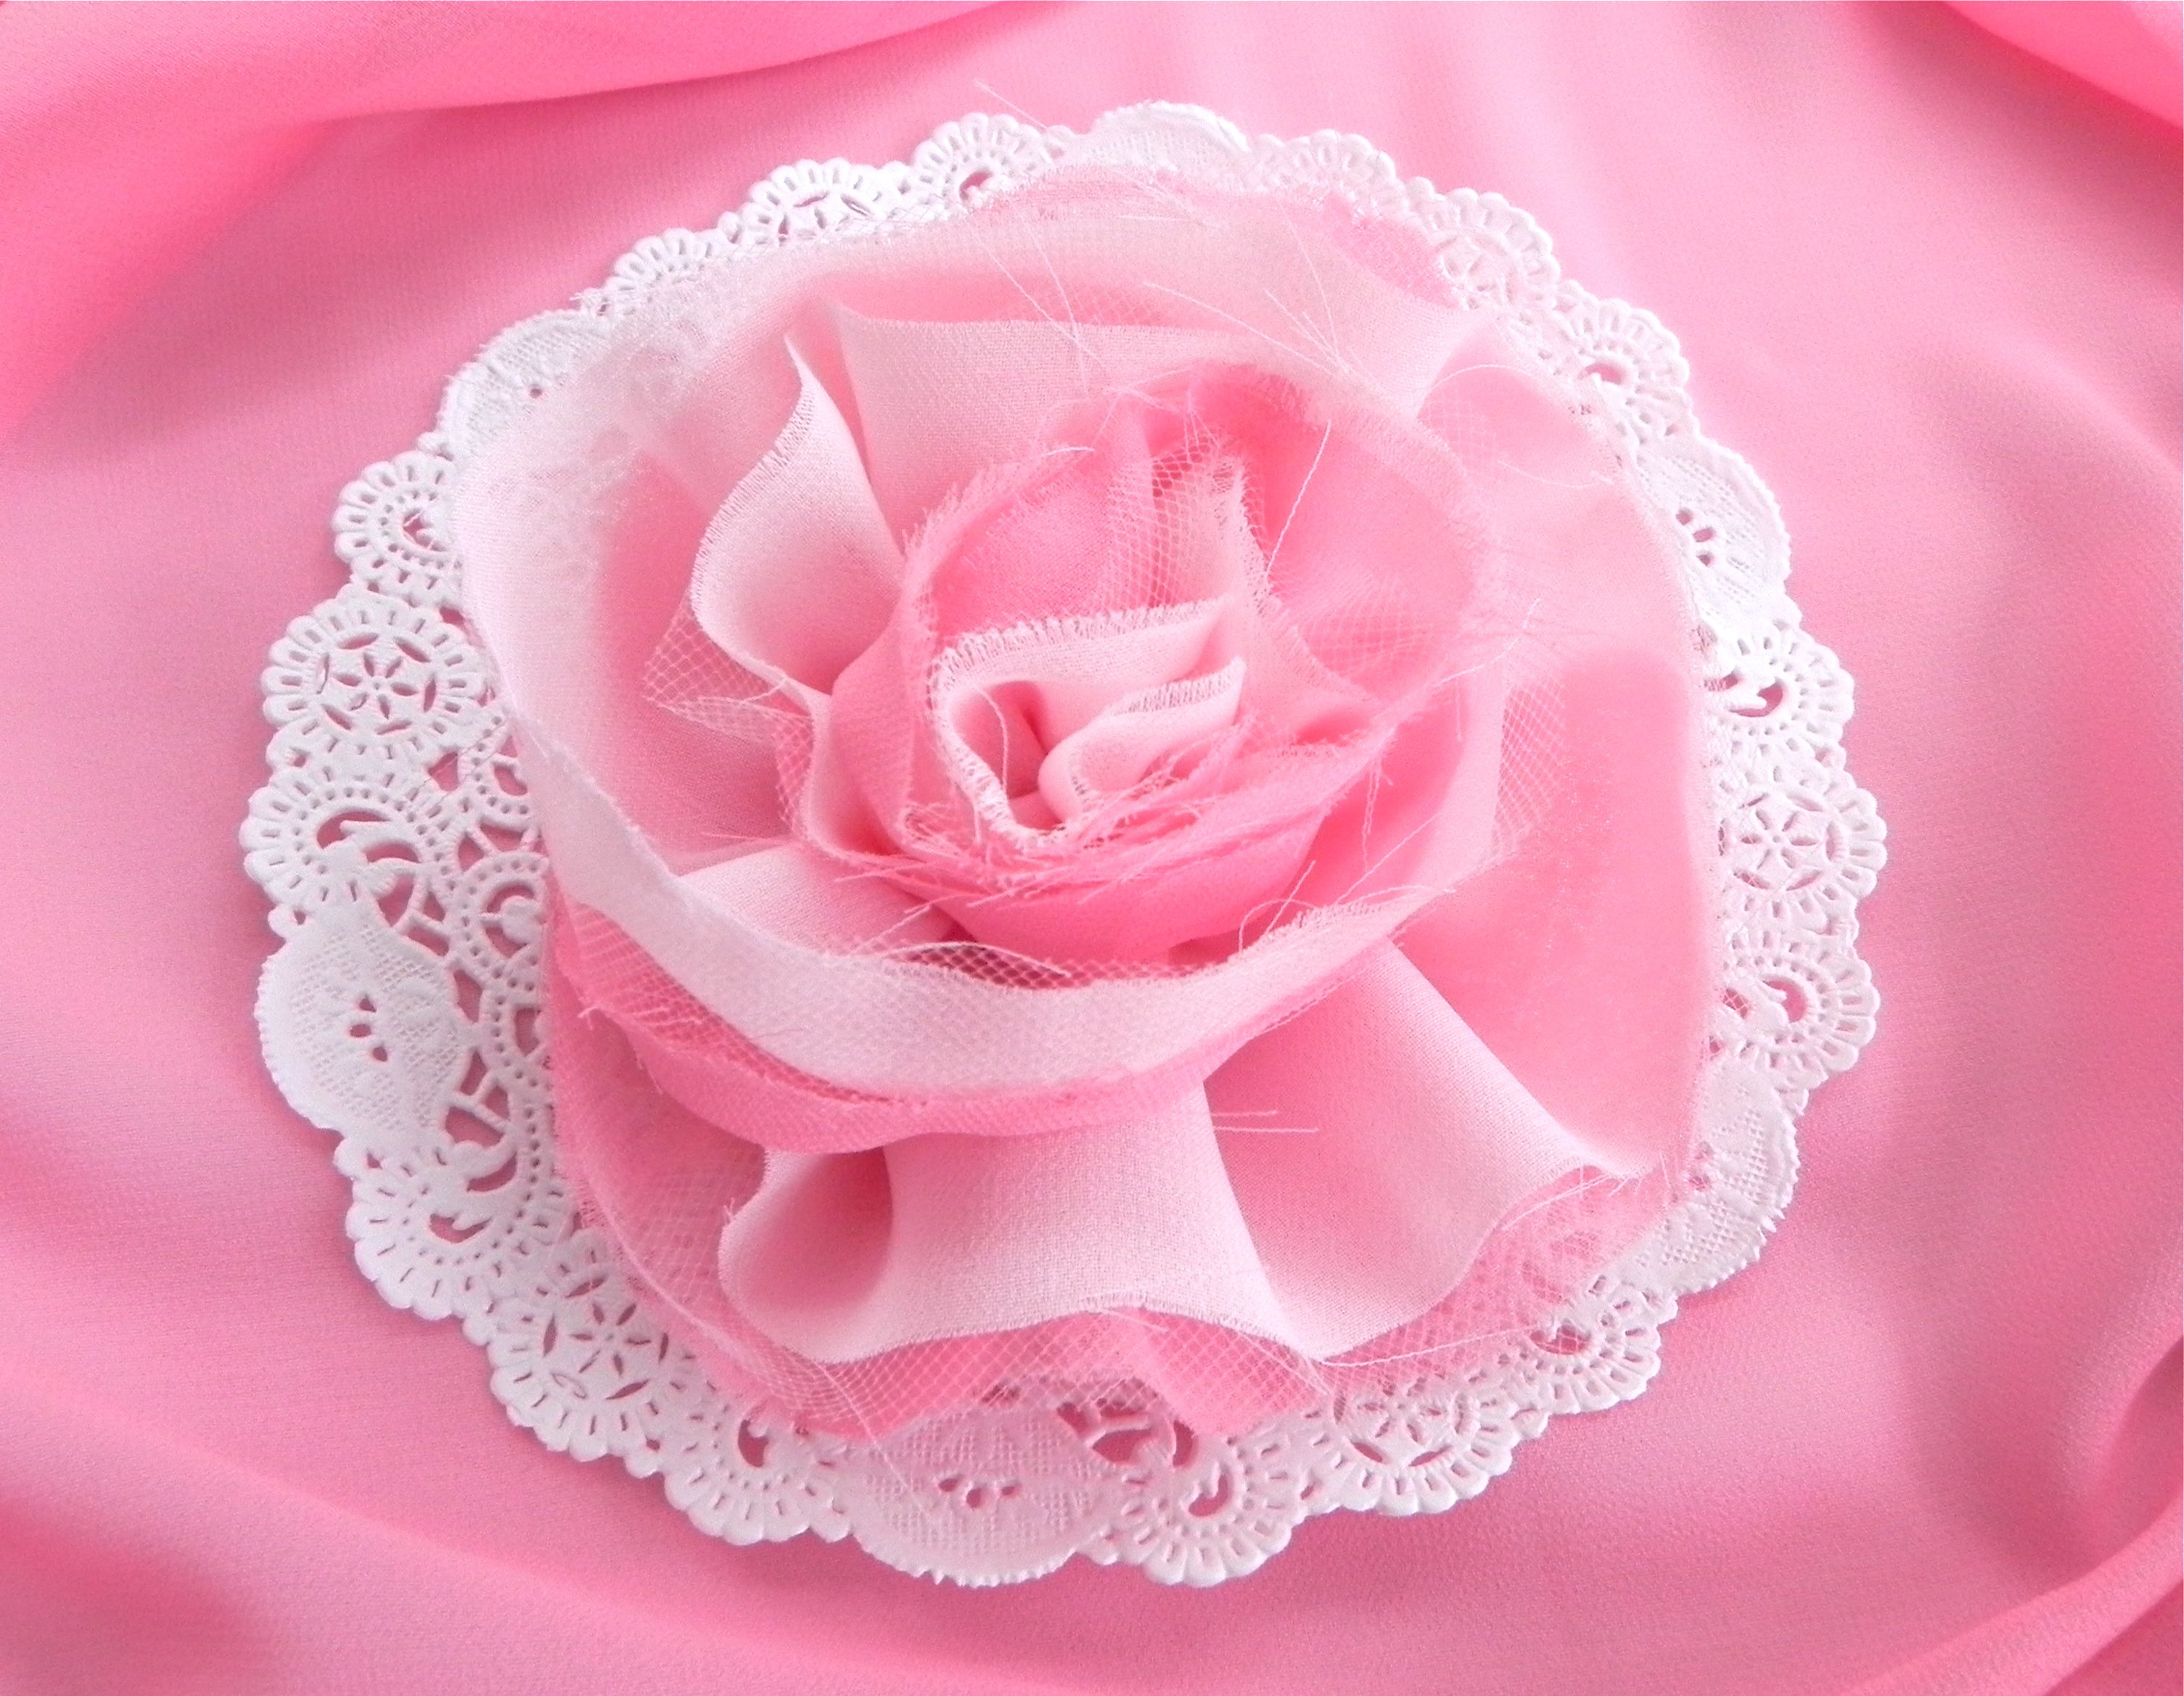 Diy fabric flowers rose inspired style miss party any fairly lightweight fabric can be used if you arent sure purchase an 18 14 yard then try it to see if you like the results mightylinksfo